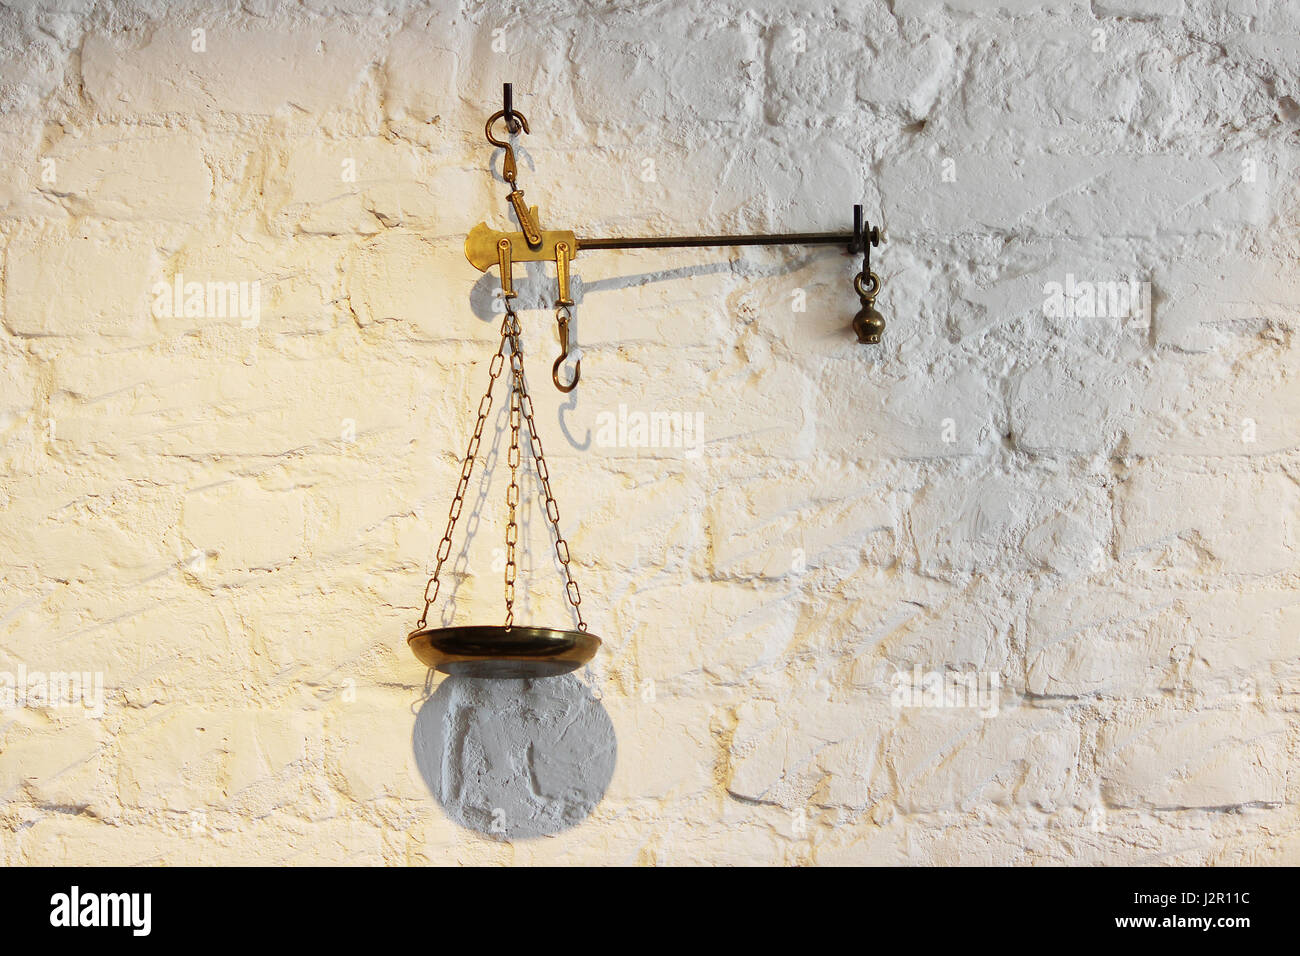 The old metal scales decorate the white wall stock photo: 139417976